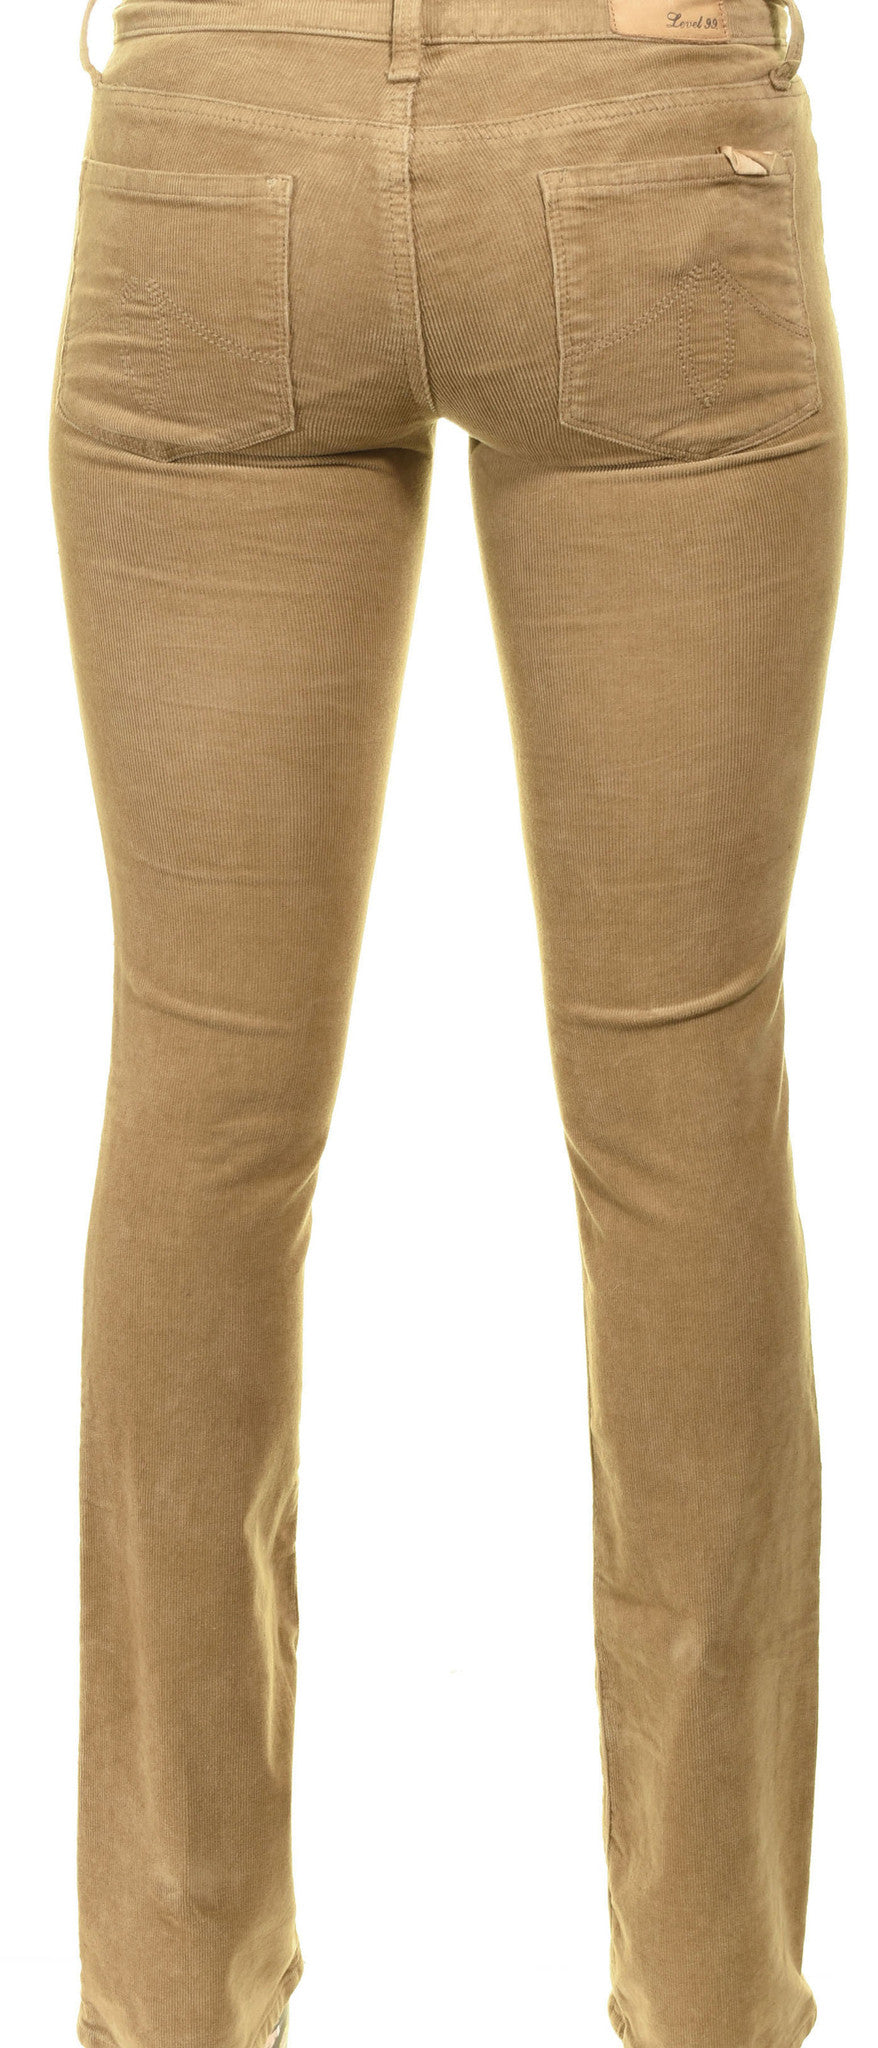 Level 99 Sasha Corduroy Classic Fit Jeans | Sparrow Brown #CY2571